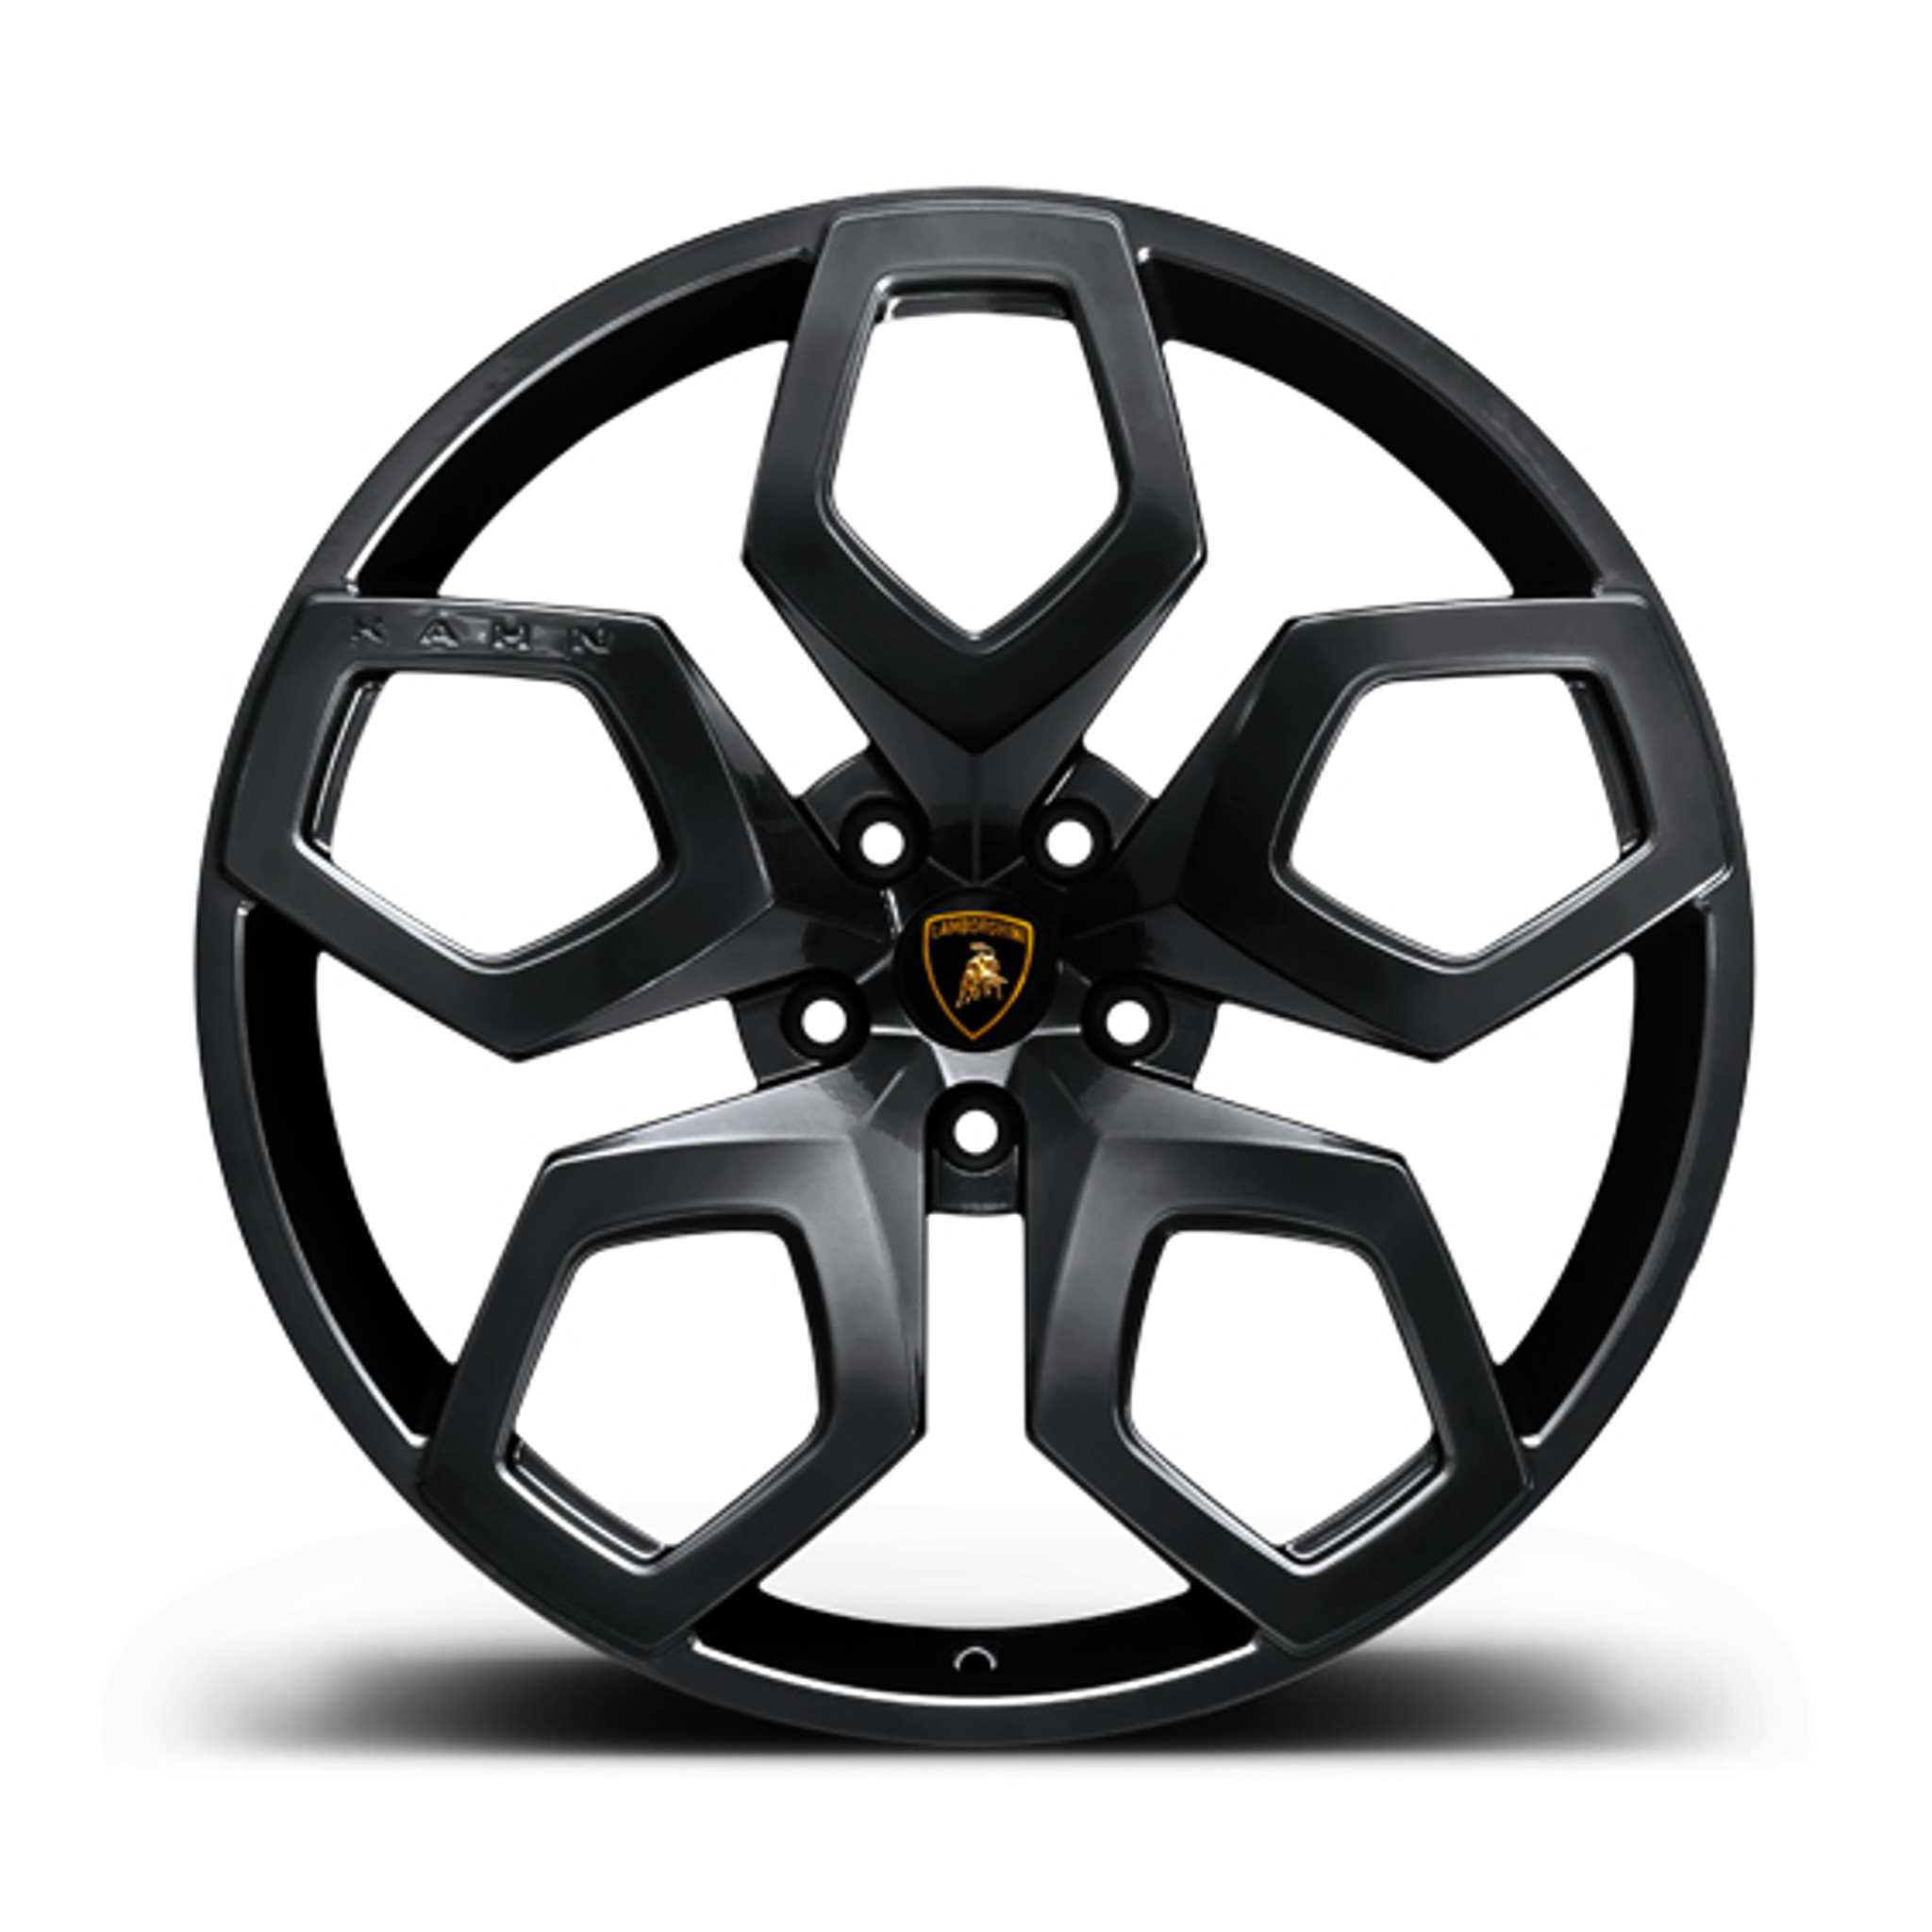 20 21 Kahn Santagata Alloy Wheels For Lamborghini Aventador